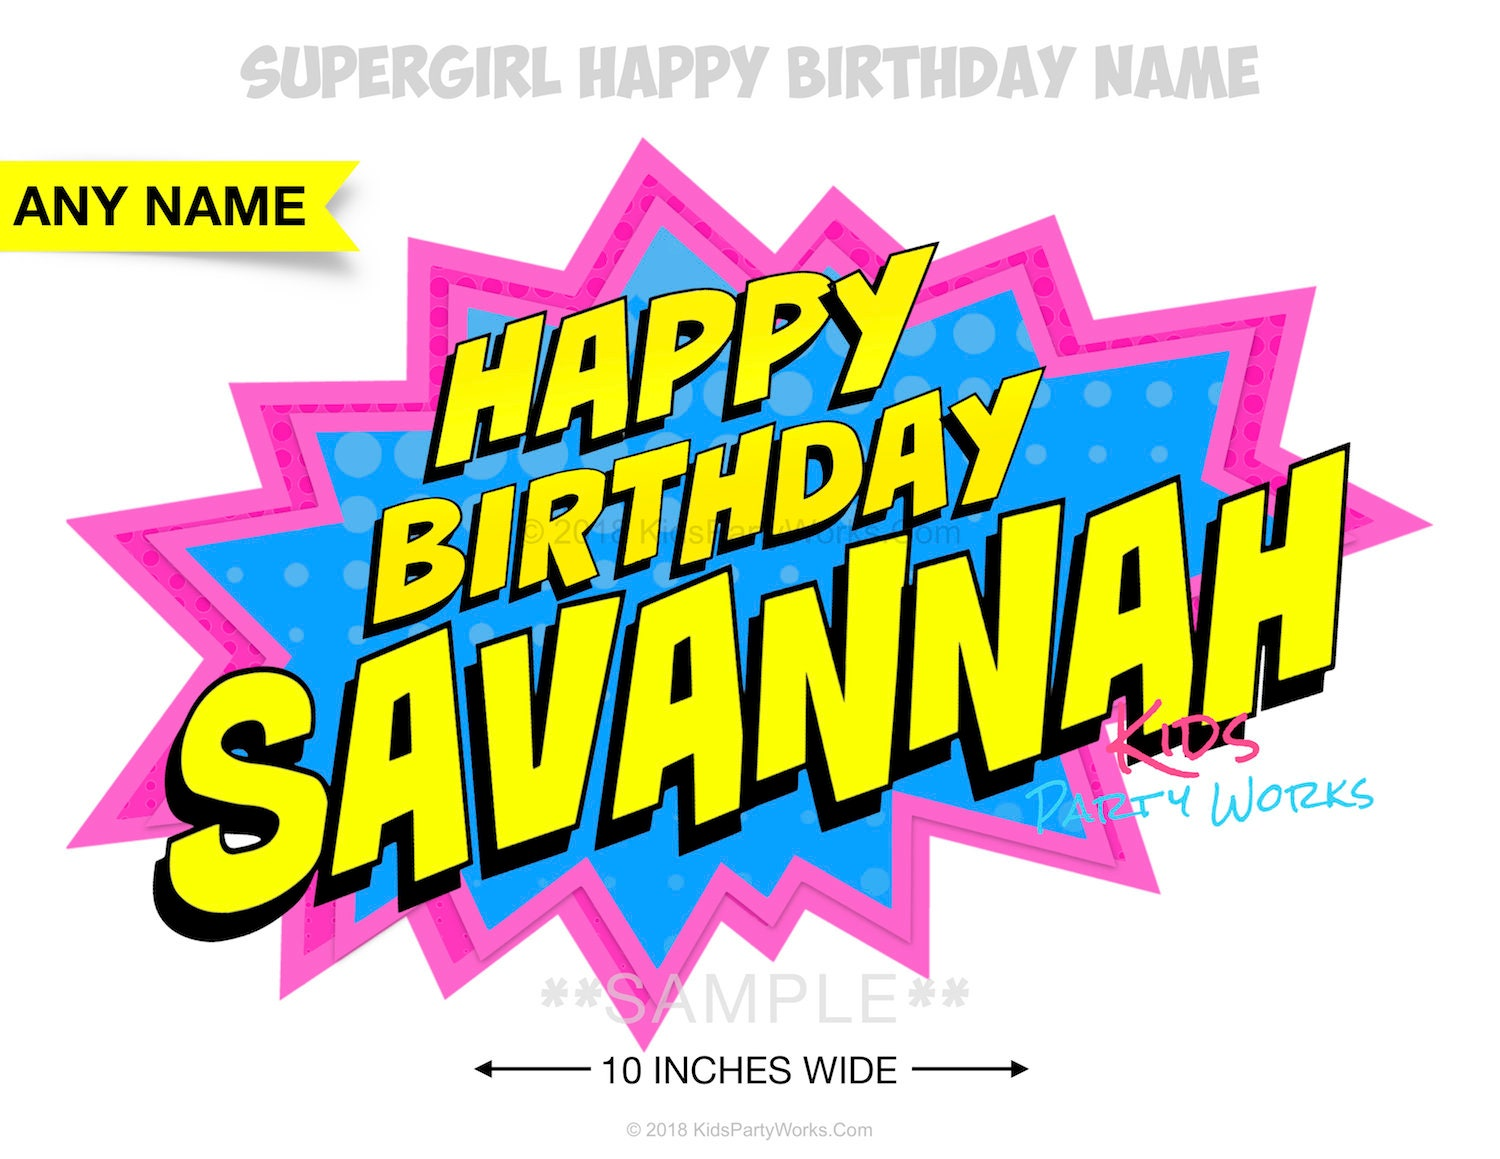 Supergirl Birthday Sign Party Etsy Jpg 1500x1159 Happy Banner